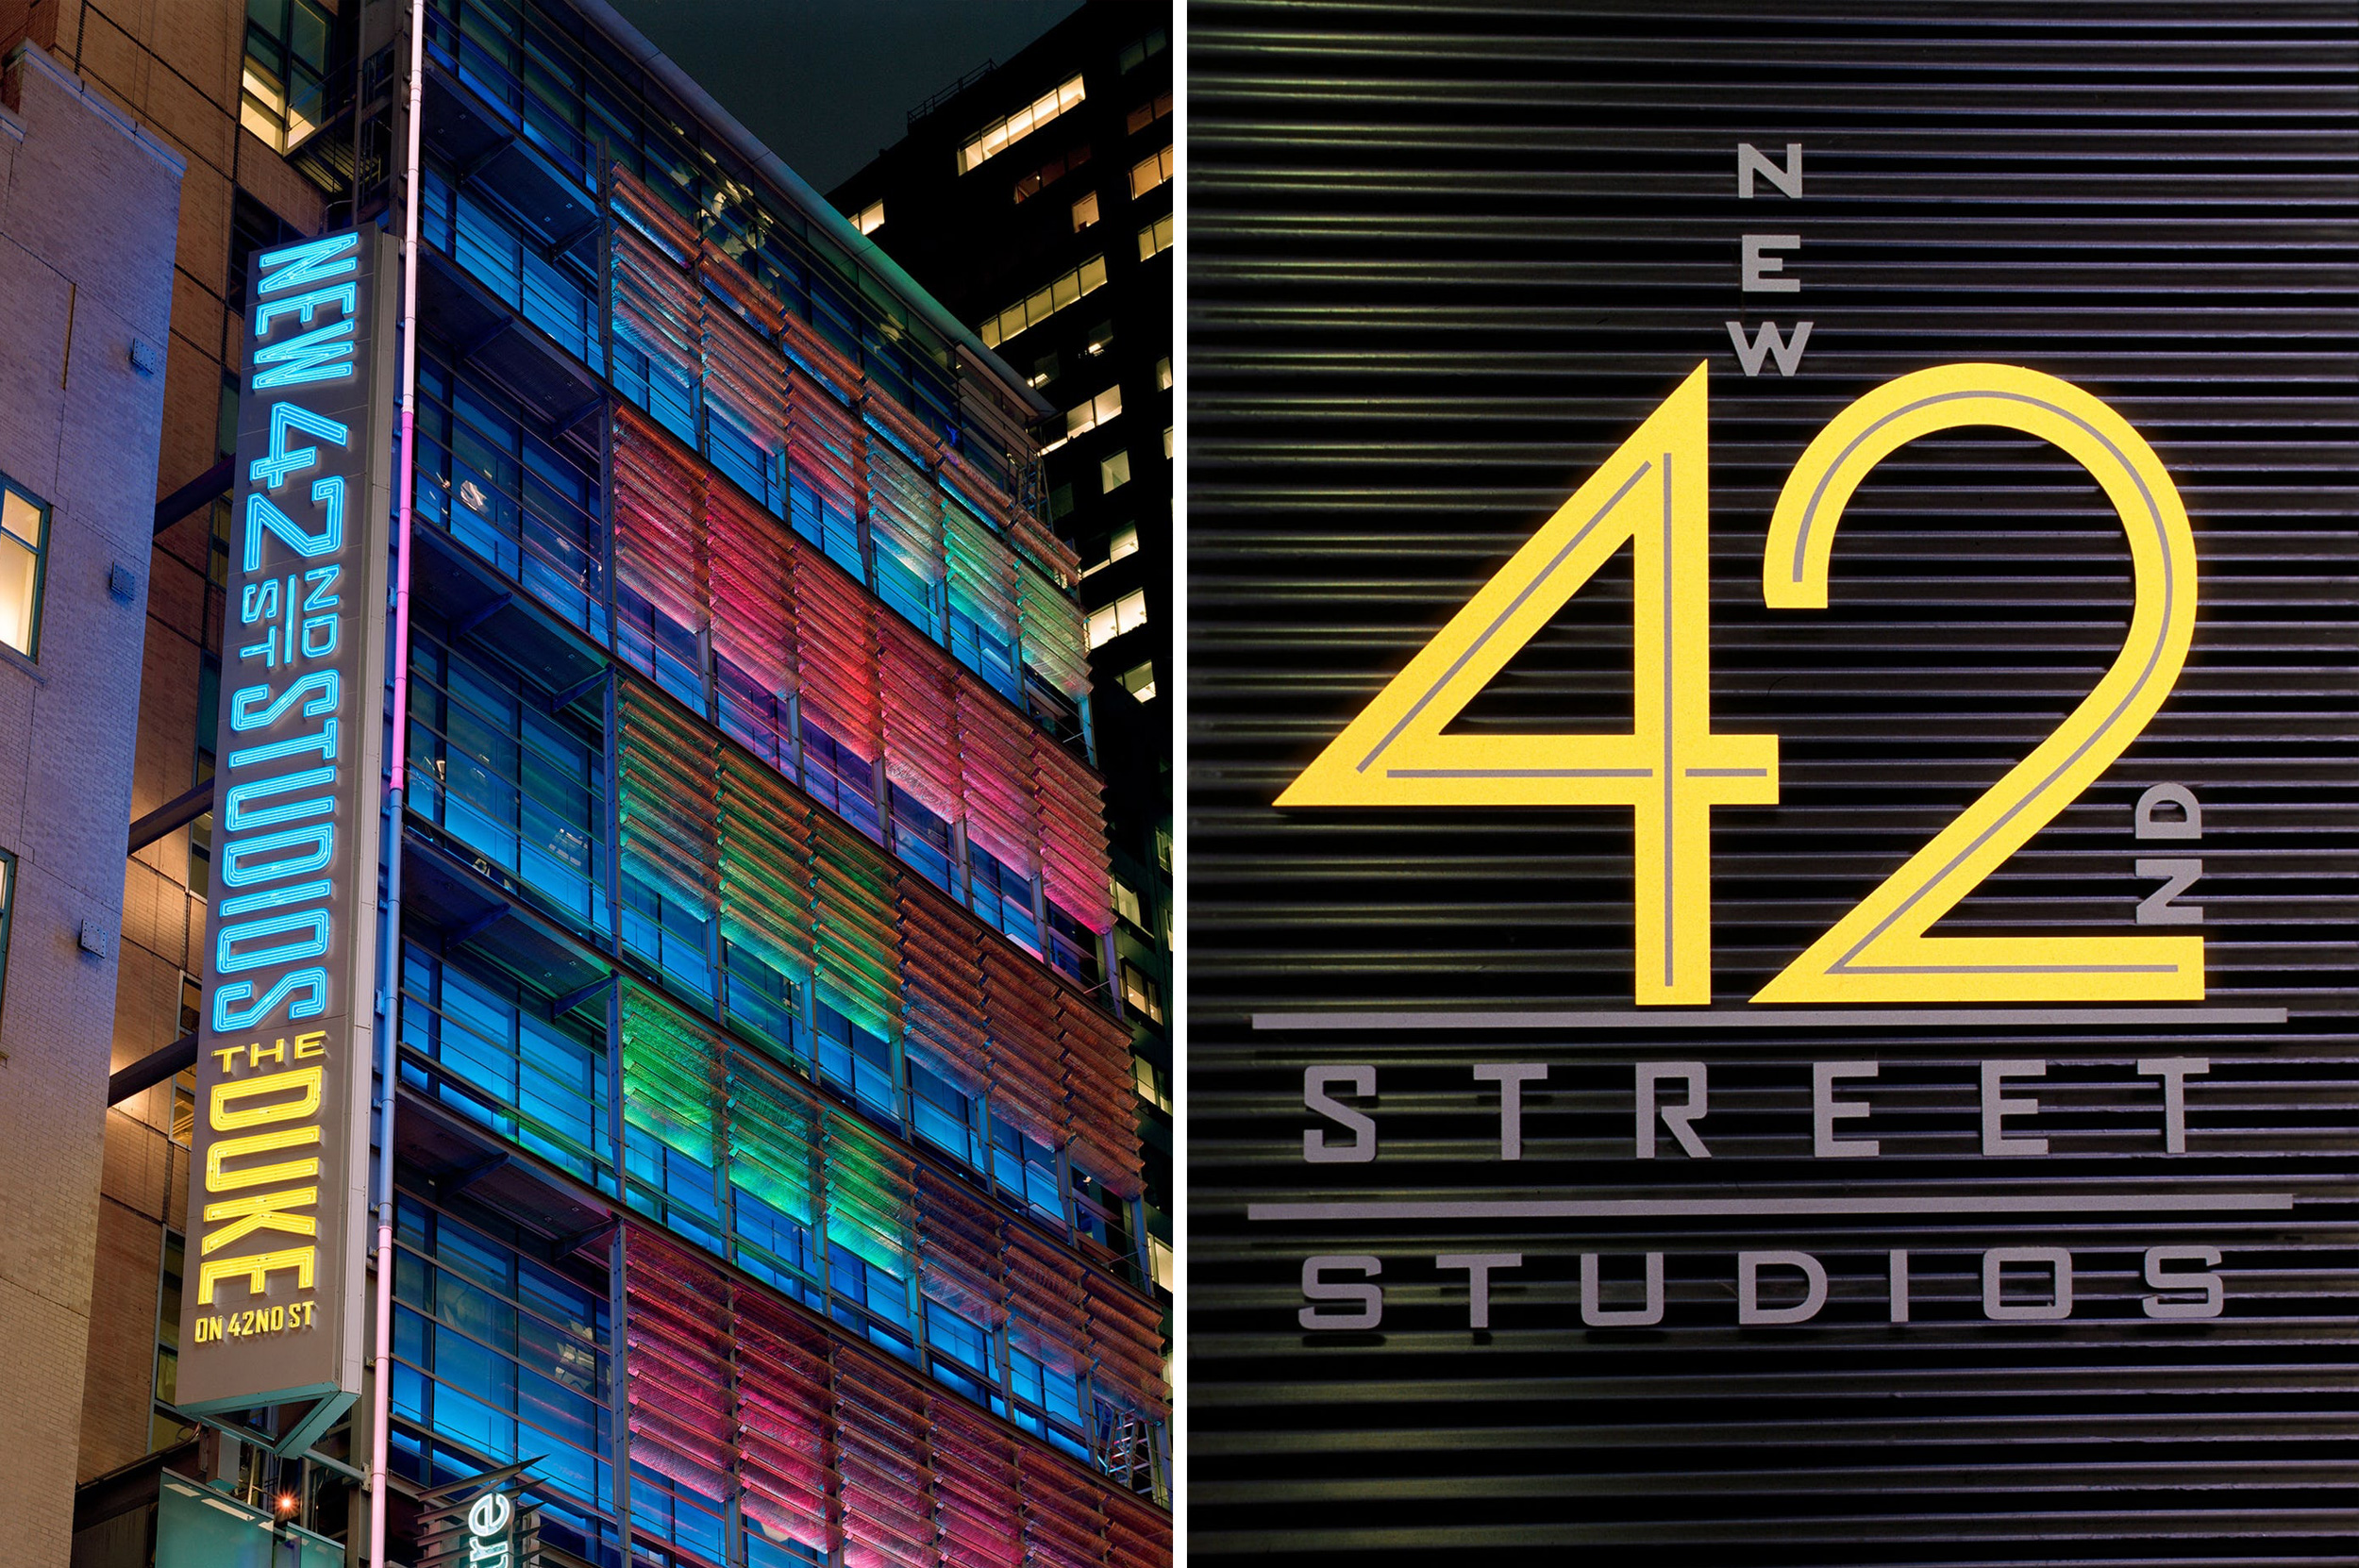 New 42nd Street Studios. Designed by Pentagram @enviromeant.com